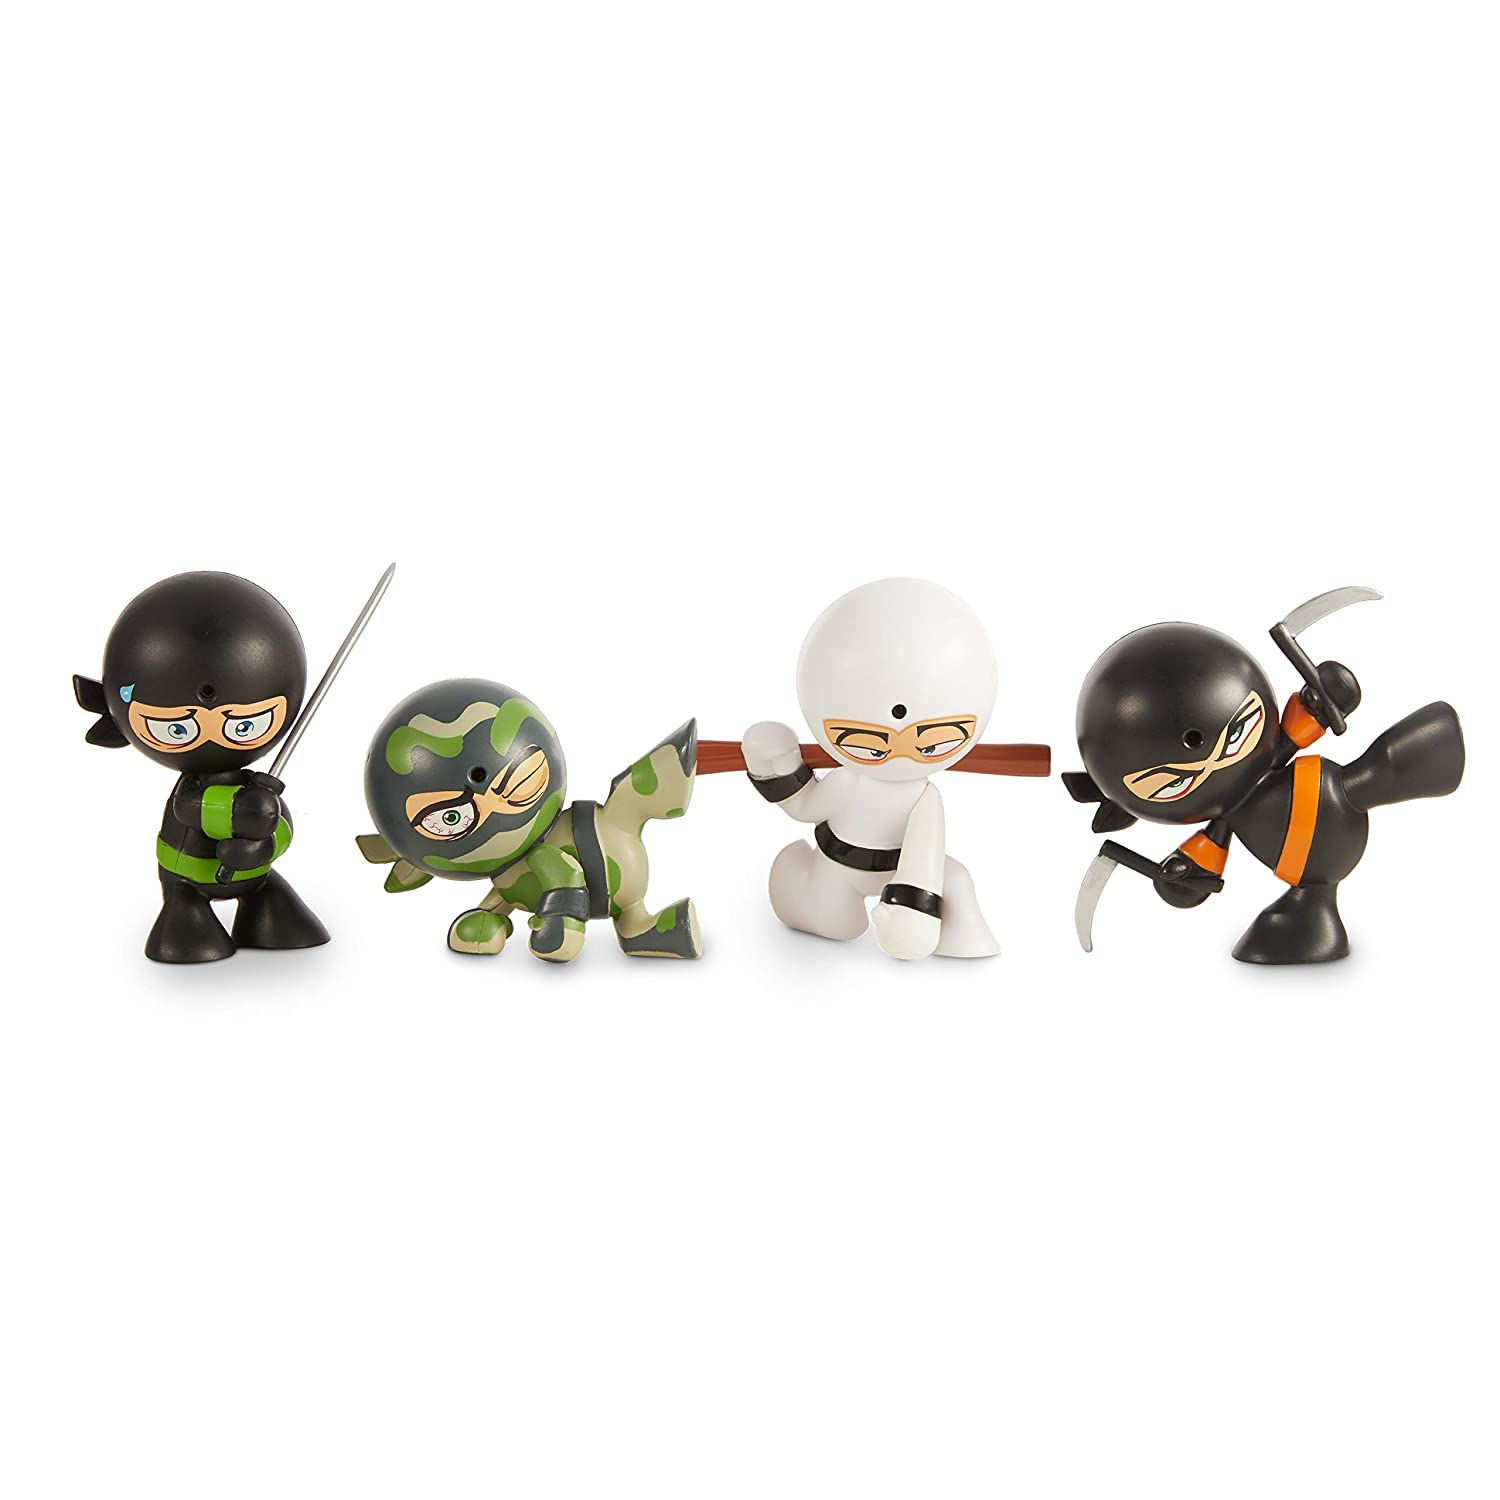 Fart Ninja 4 Pack Styles May Vary from Shown, Multicolor